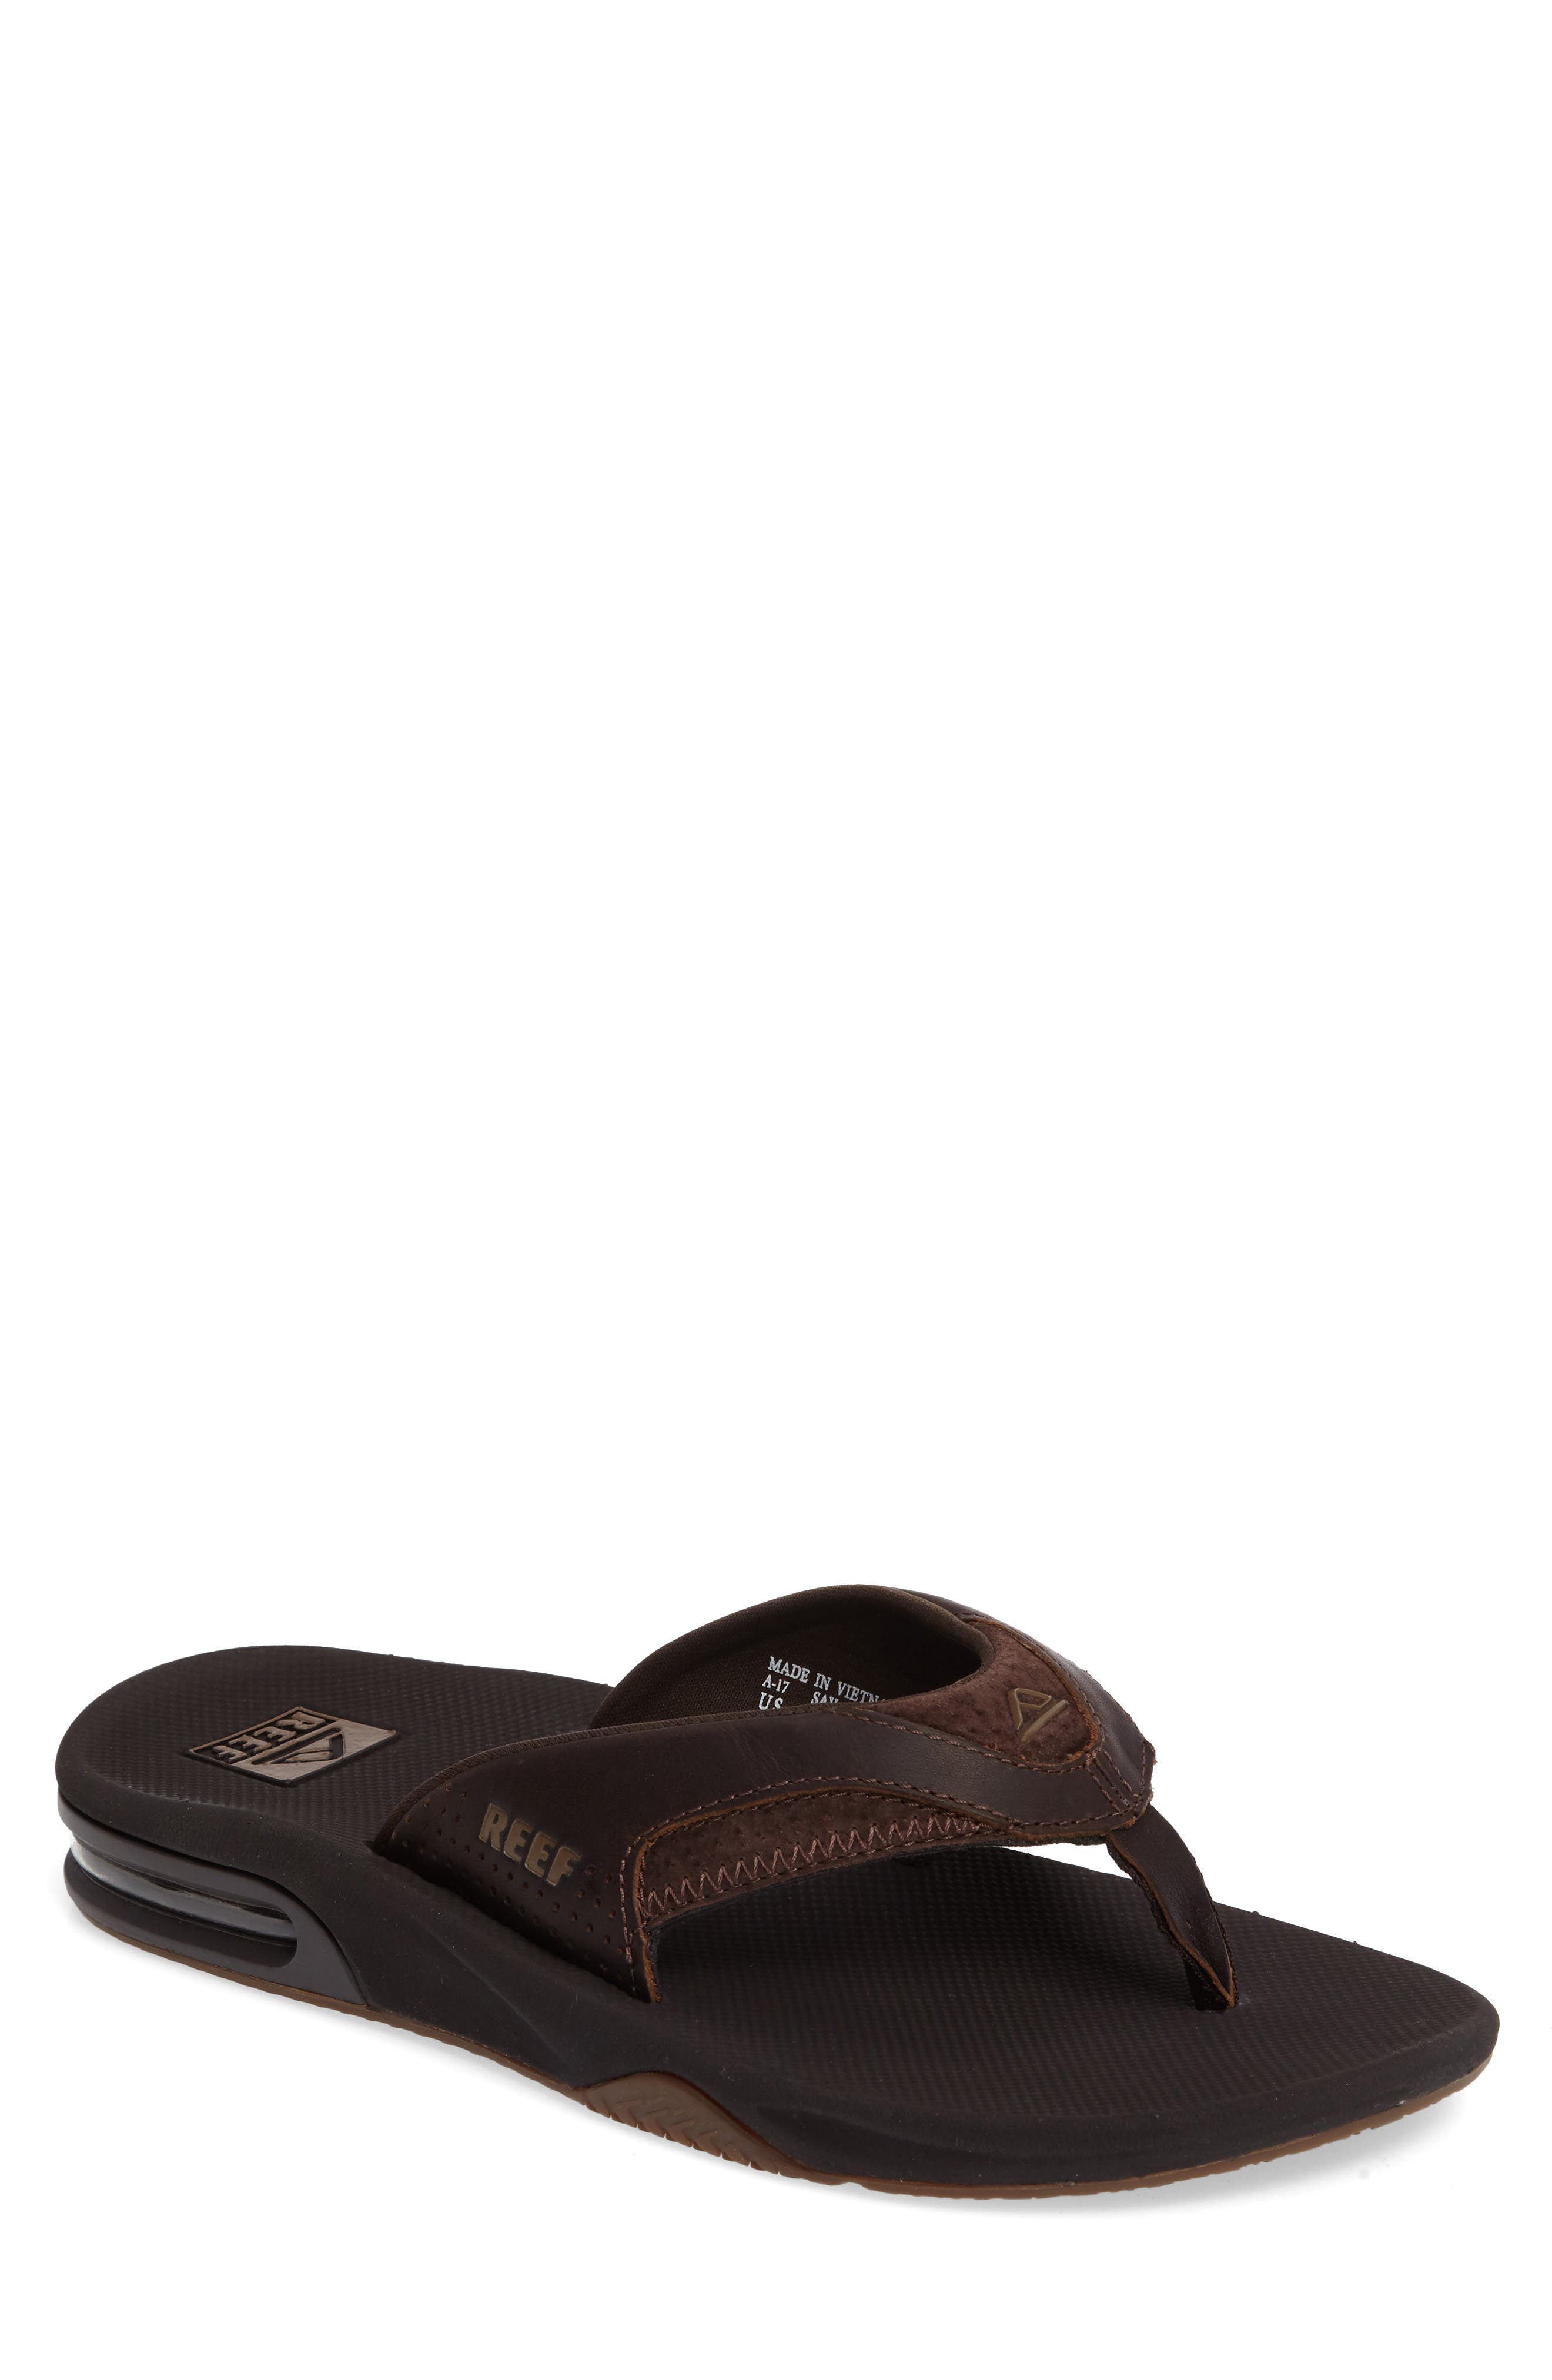 REEF 'Fanning Leather' Flip Flop, Main, color, BROWN LEATHER